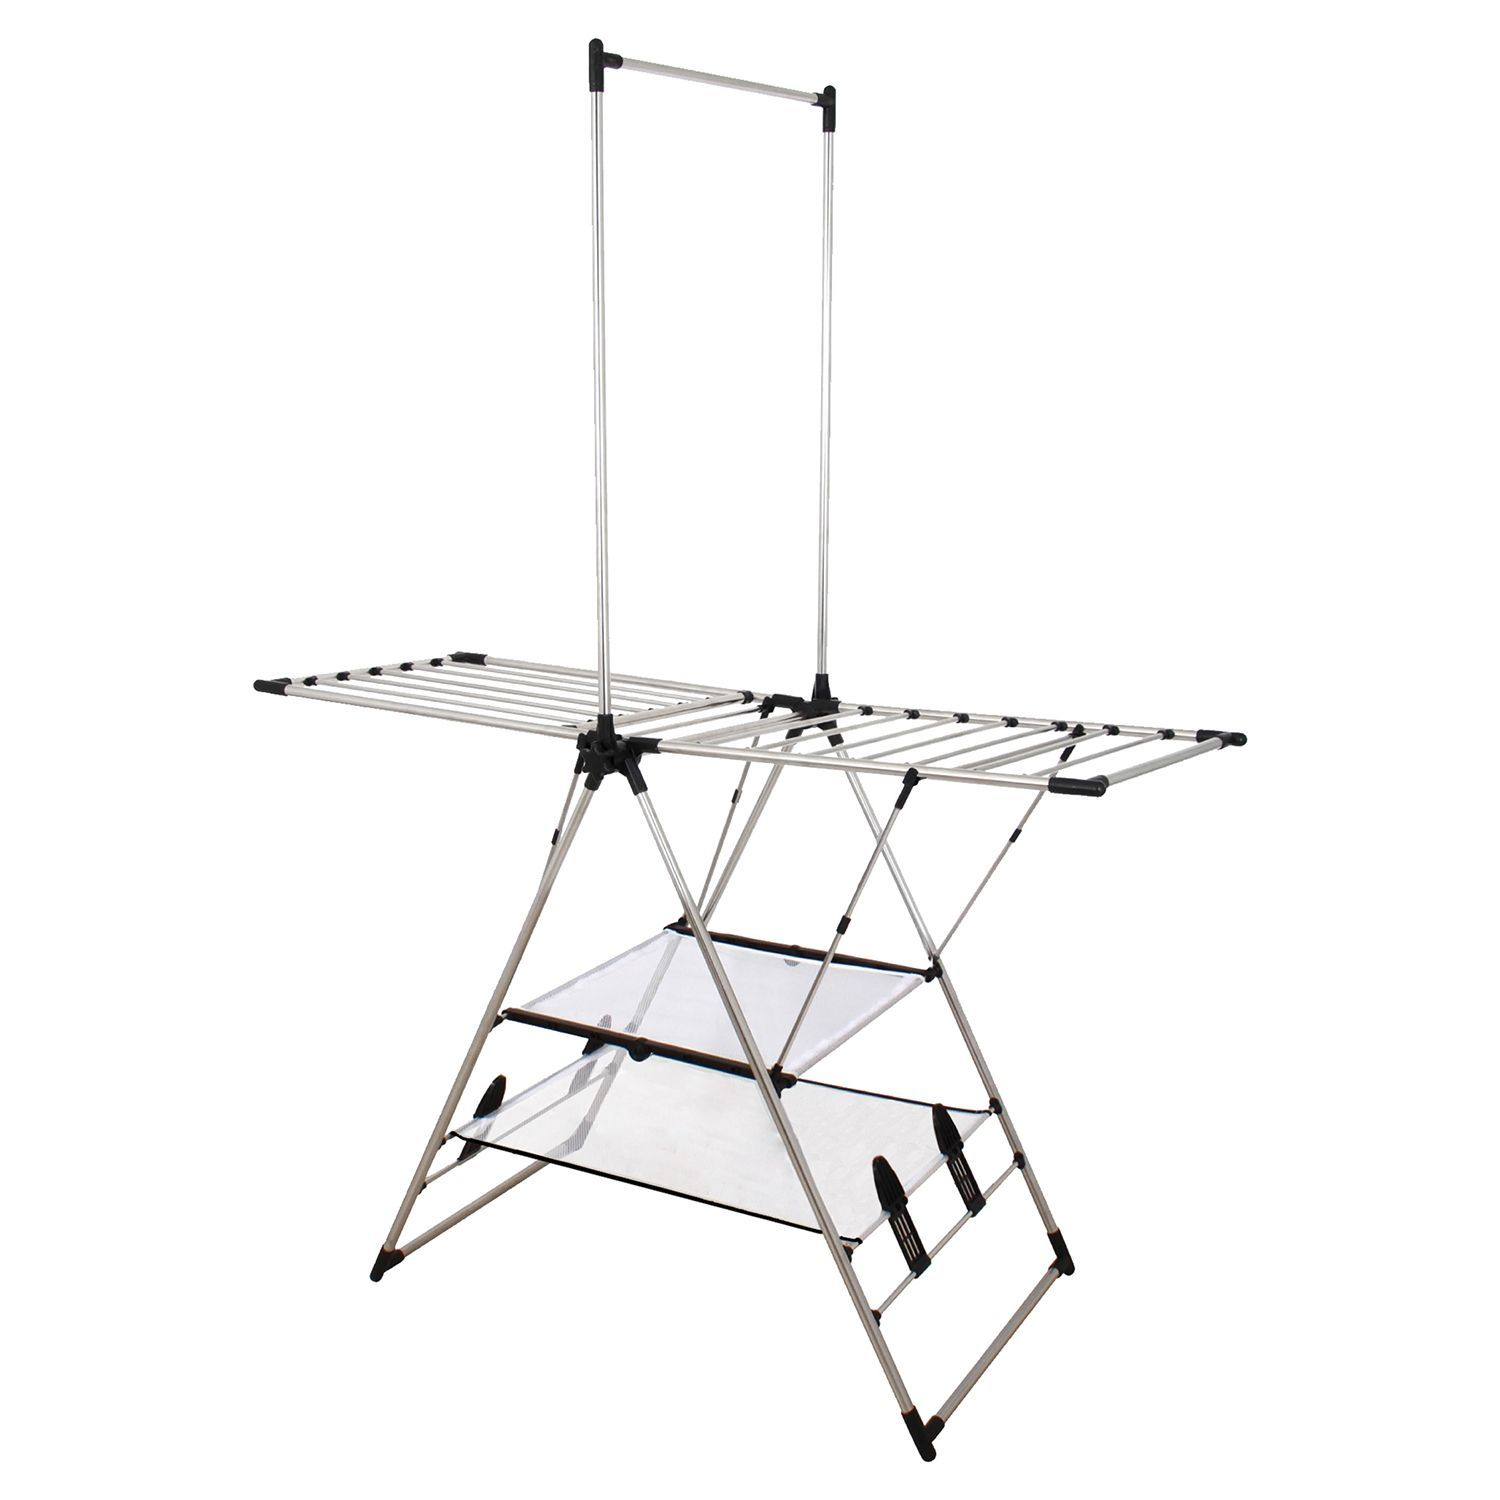 Clothes Drying Rack Costco Adorable Indooroutdoor Stainless Steel Drying Center With Double Mesh Design Ideas